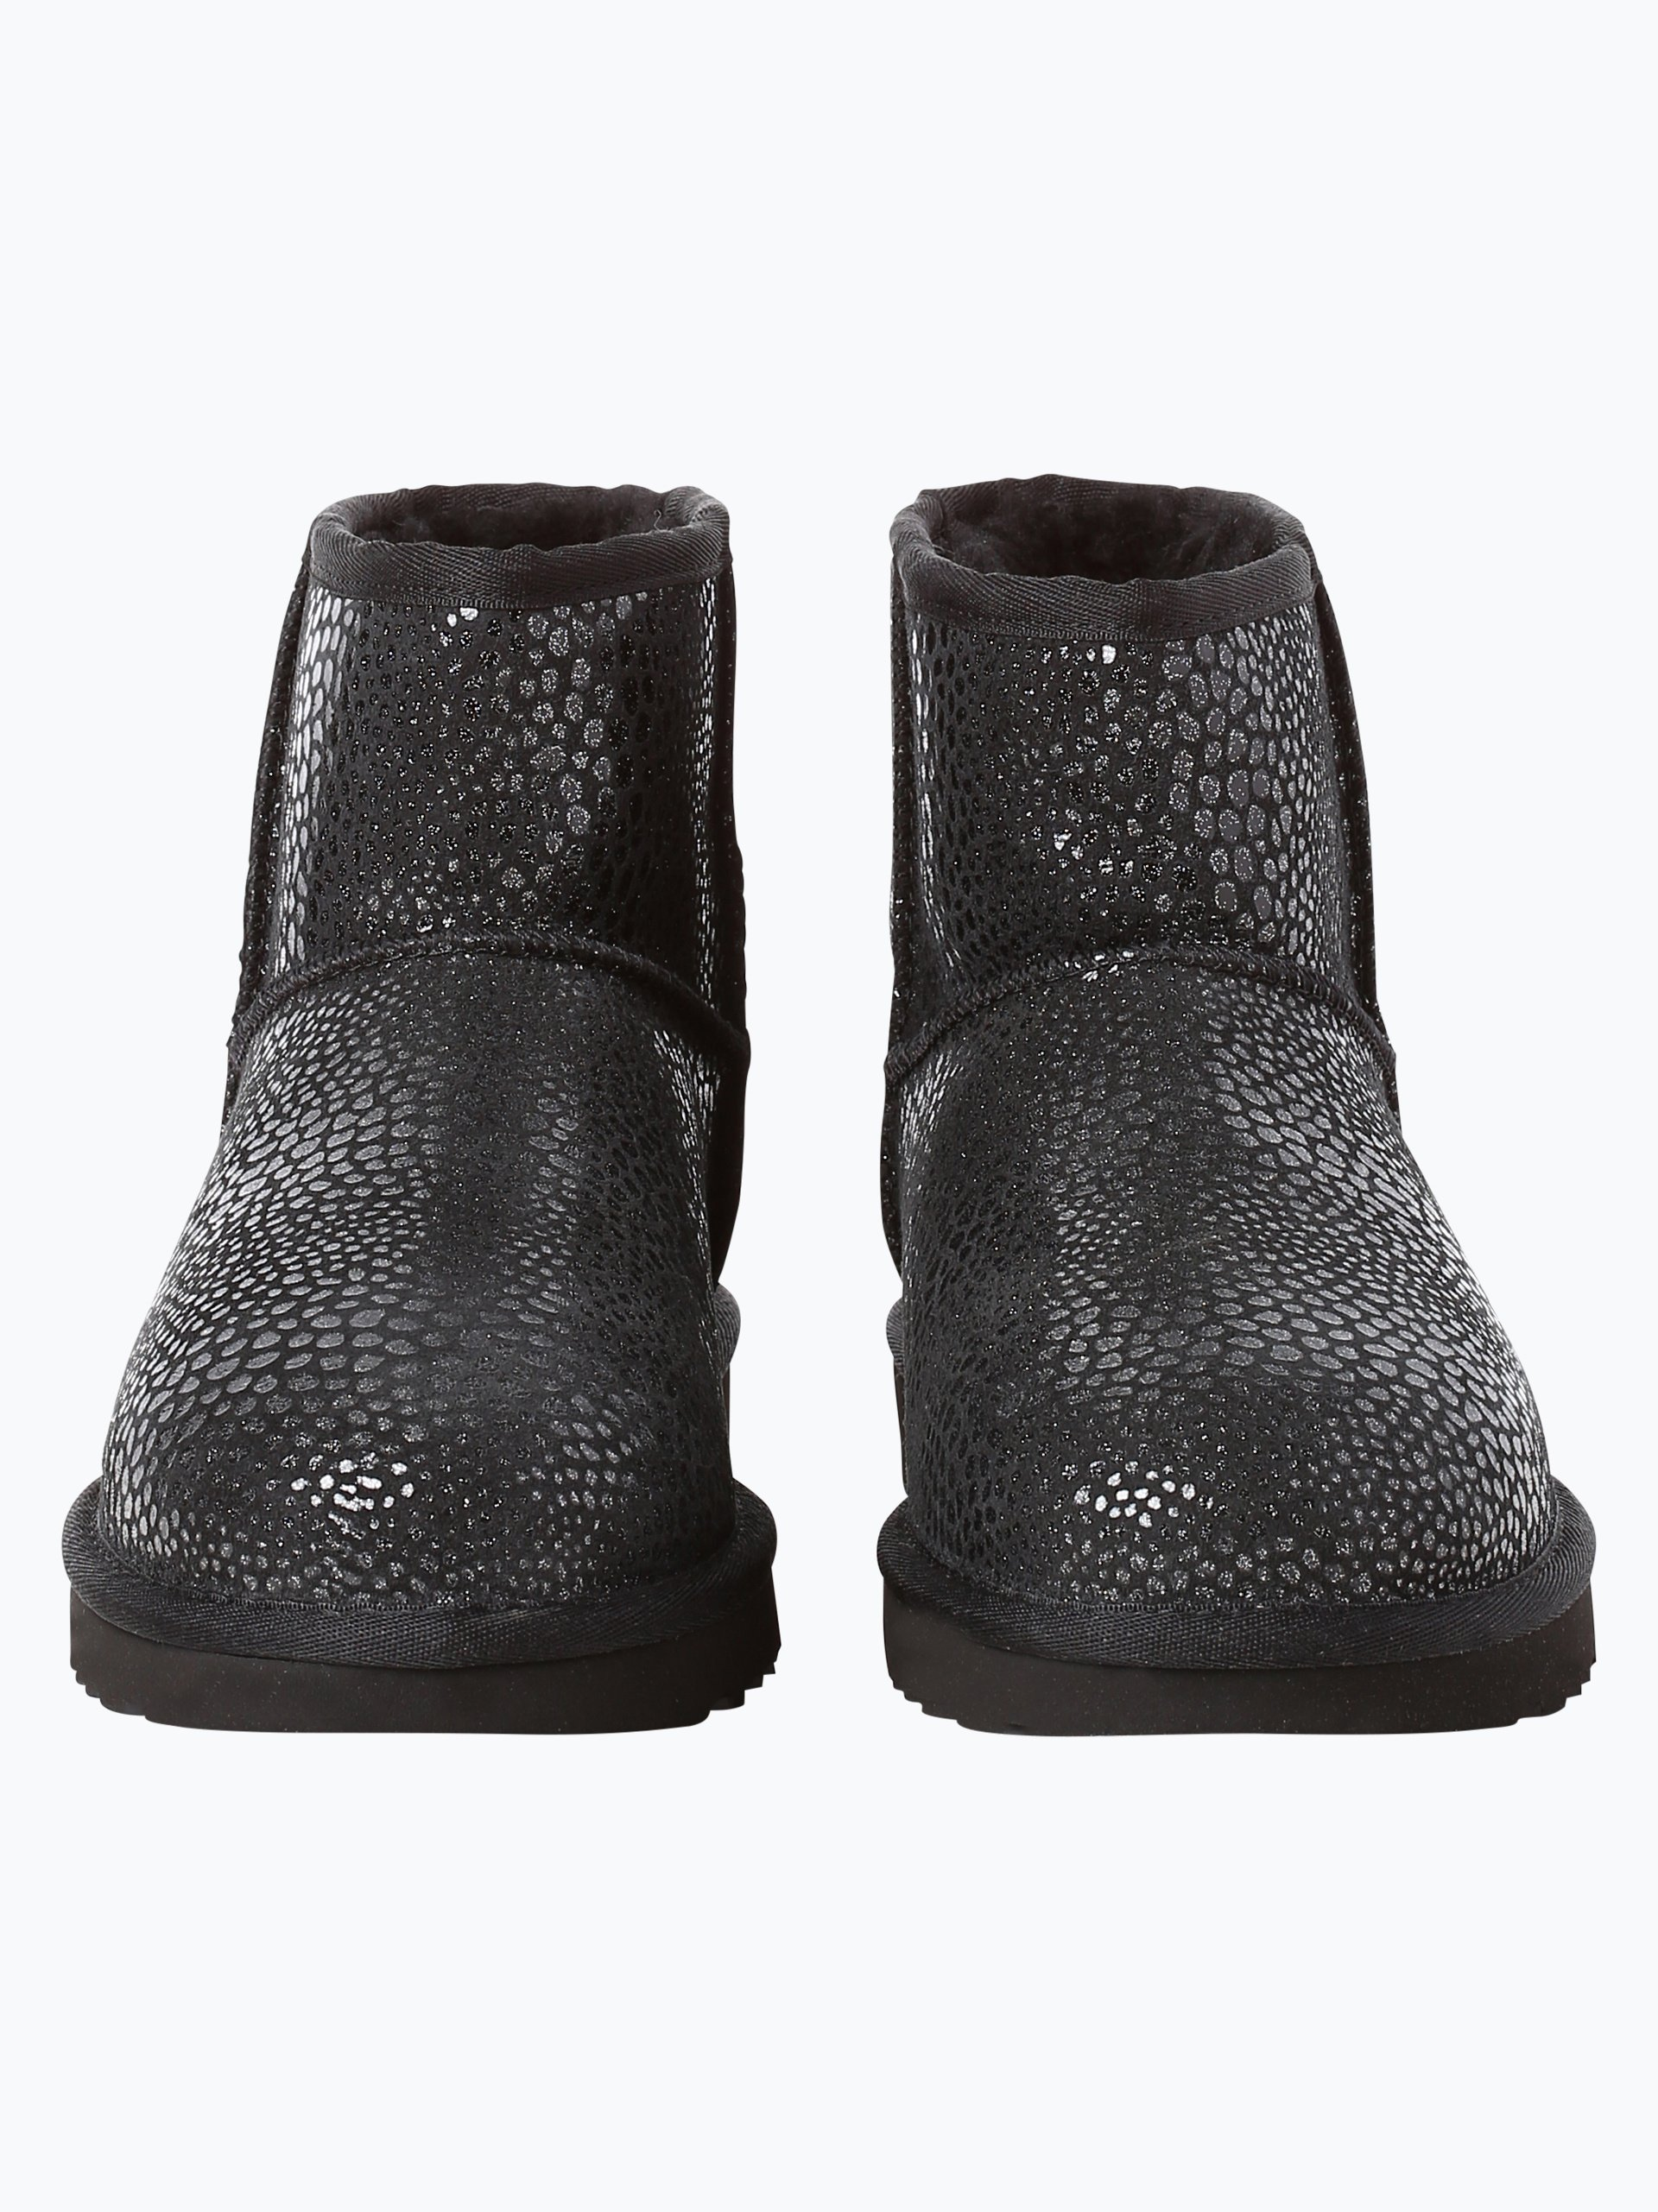 ugg damen boots aus leder schwarz gemustert online kaufen vangraaf com. Black Bedroom Furniture Sets. Home Design Ideas